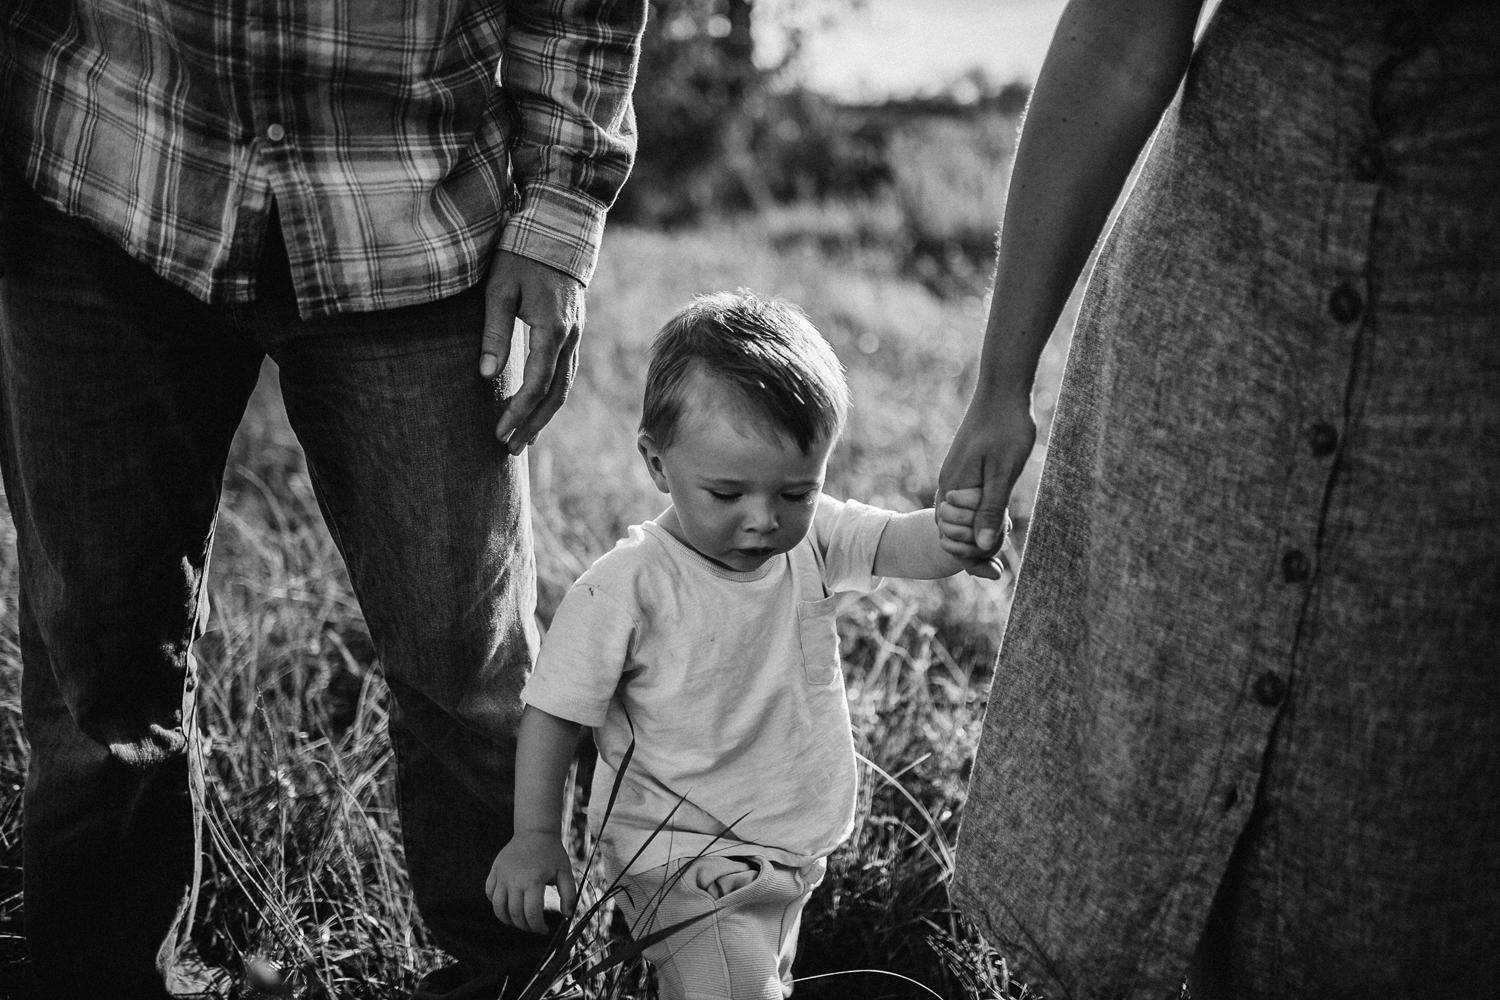 perth lanark county family outdoor photographer - kerry ford photography-060.jpg